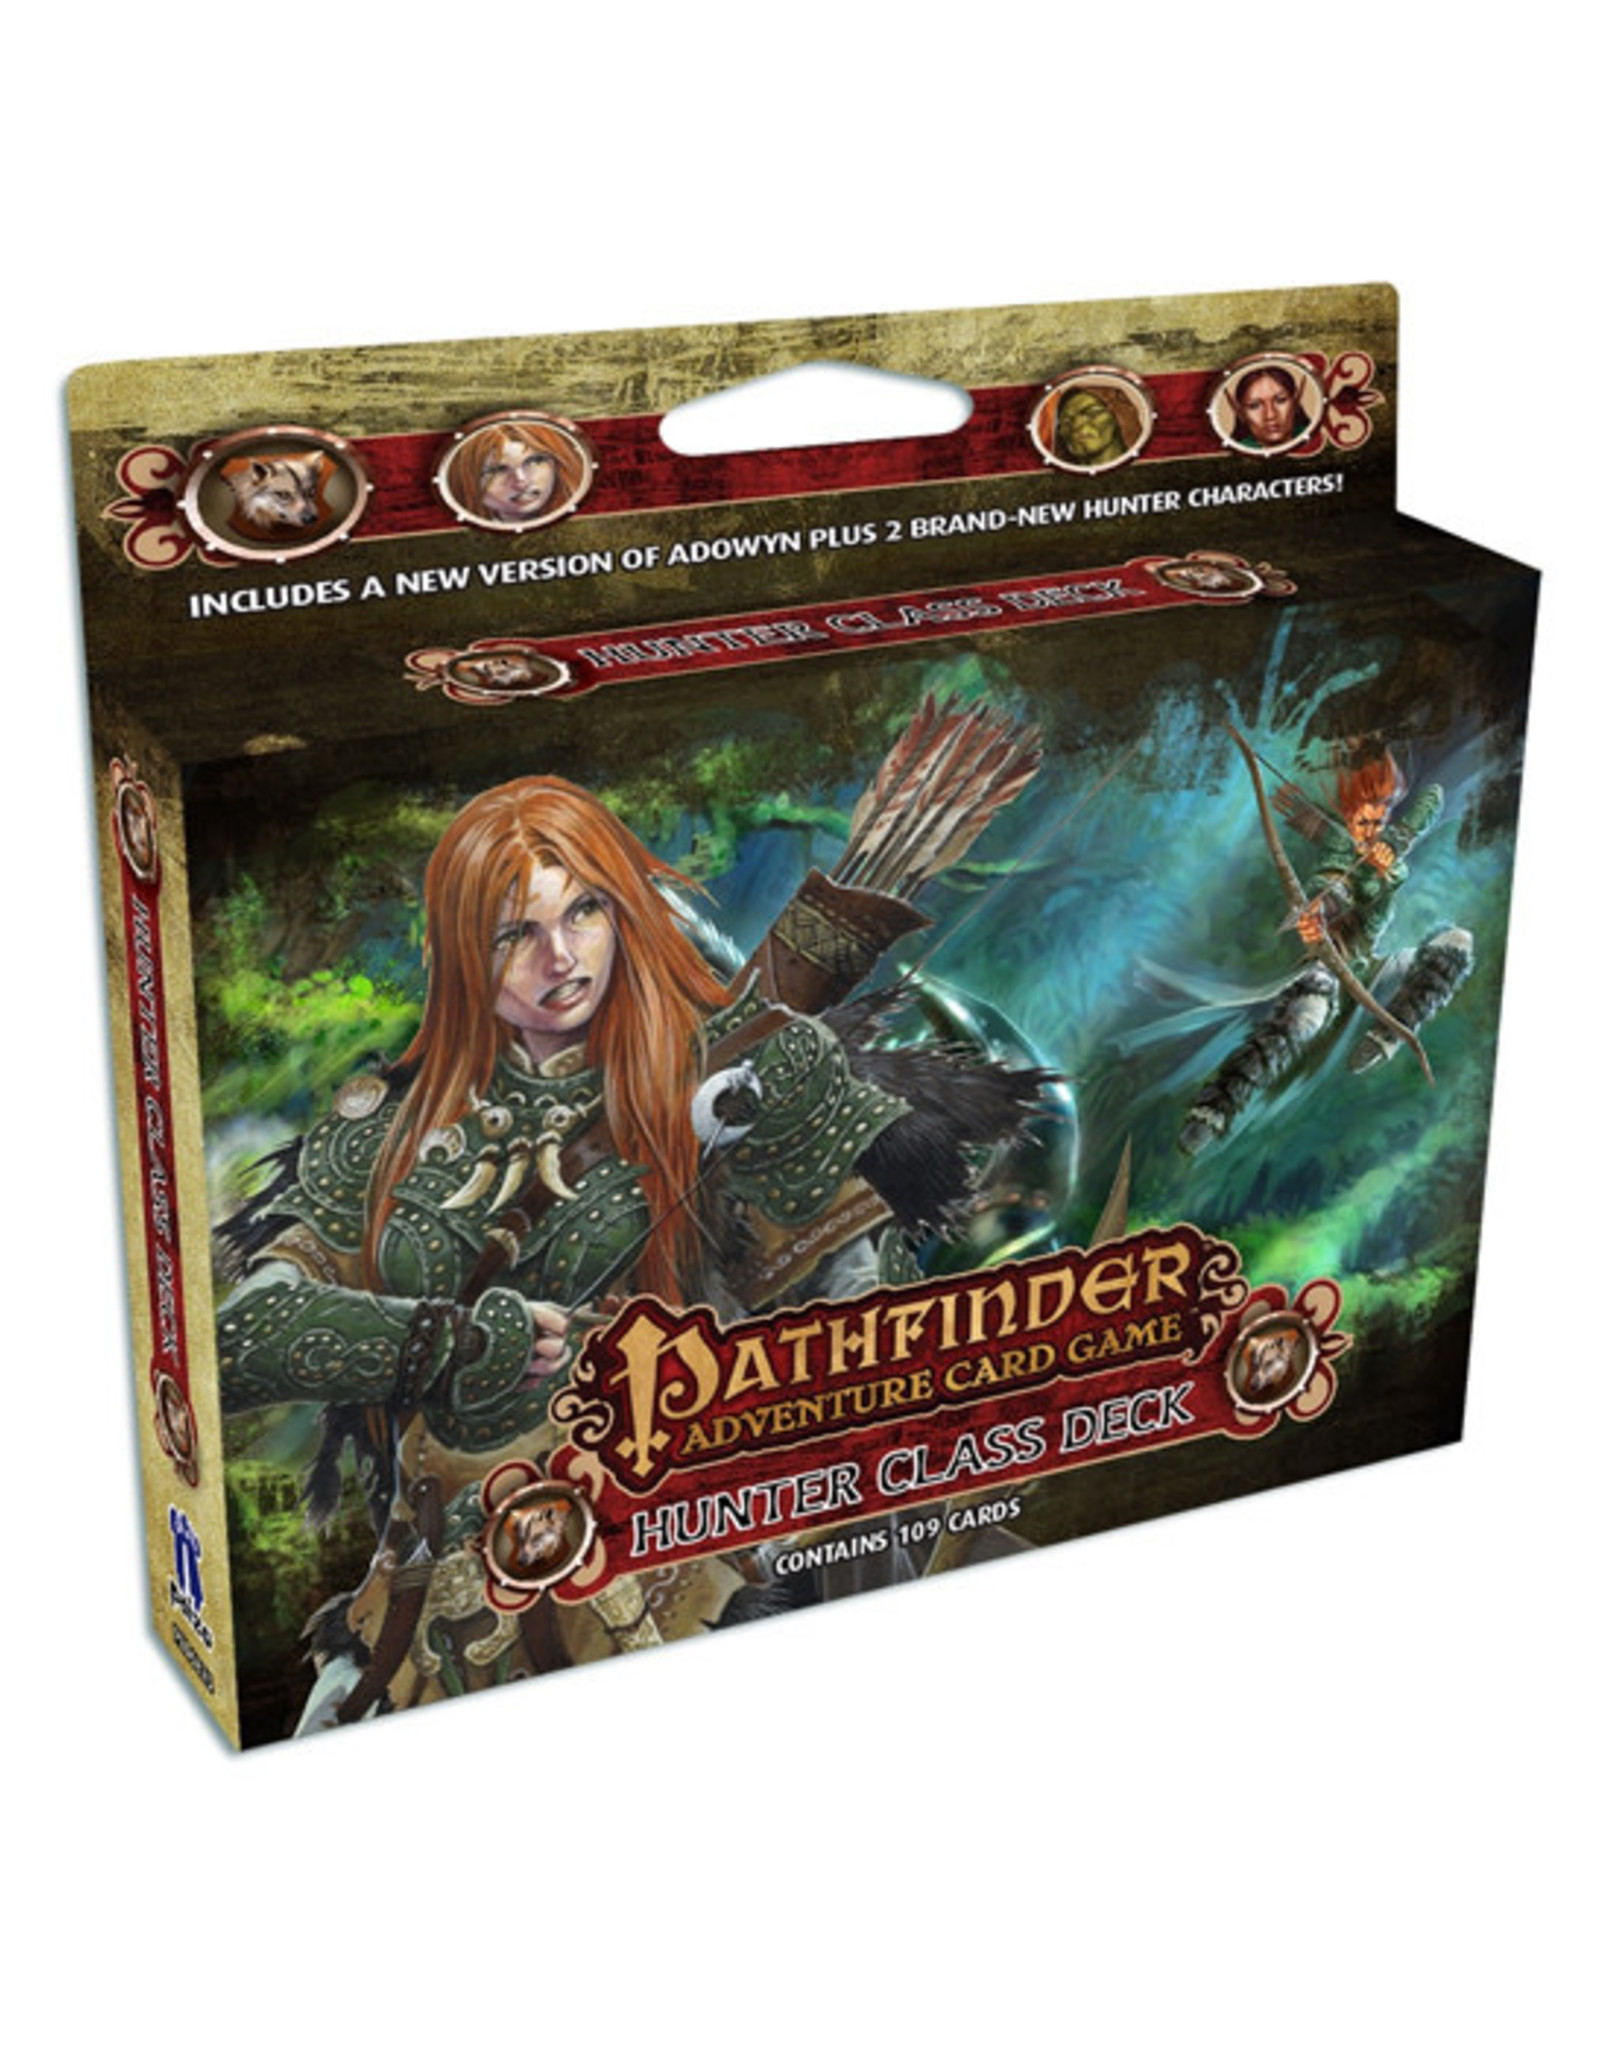 Pathfinder Pathfinder: Adventure Card Game - Hunter Class Deck